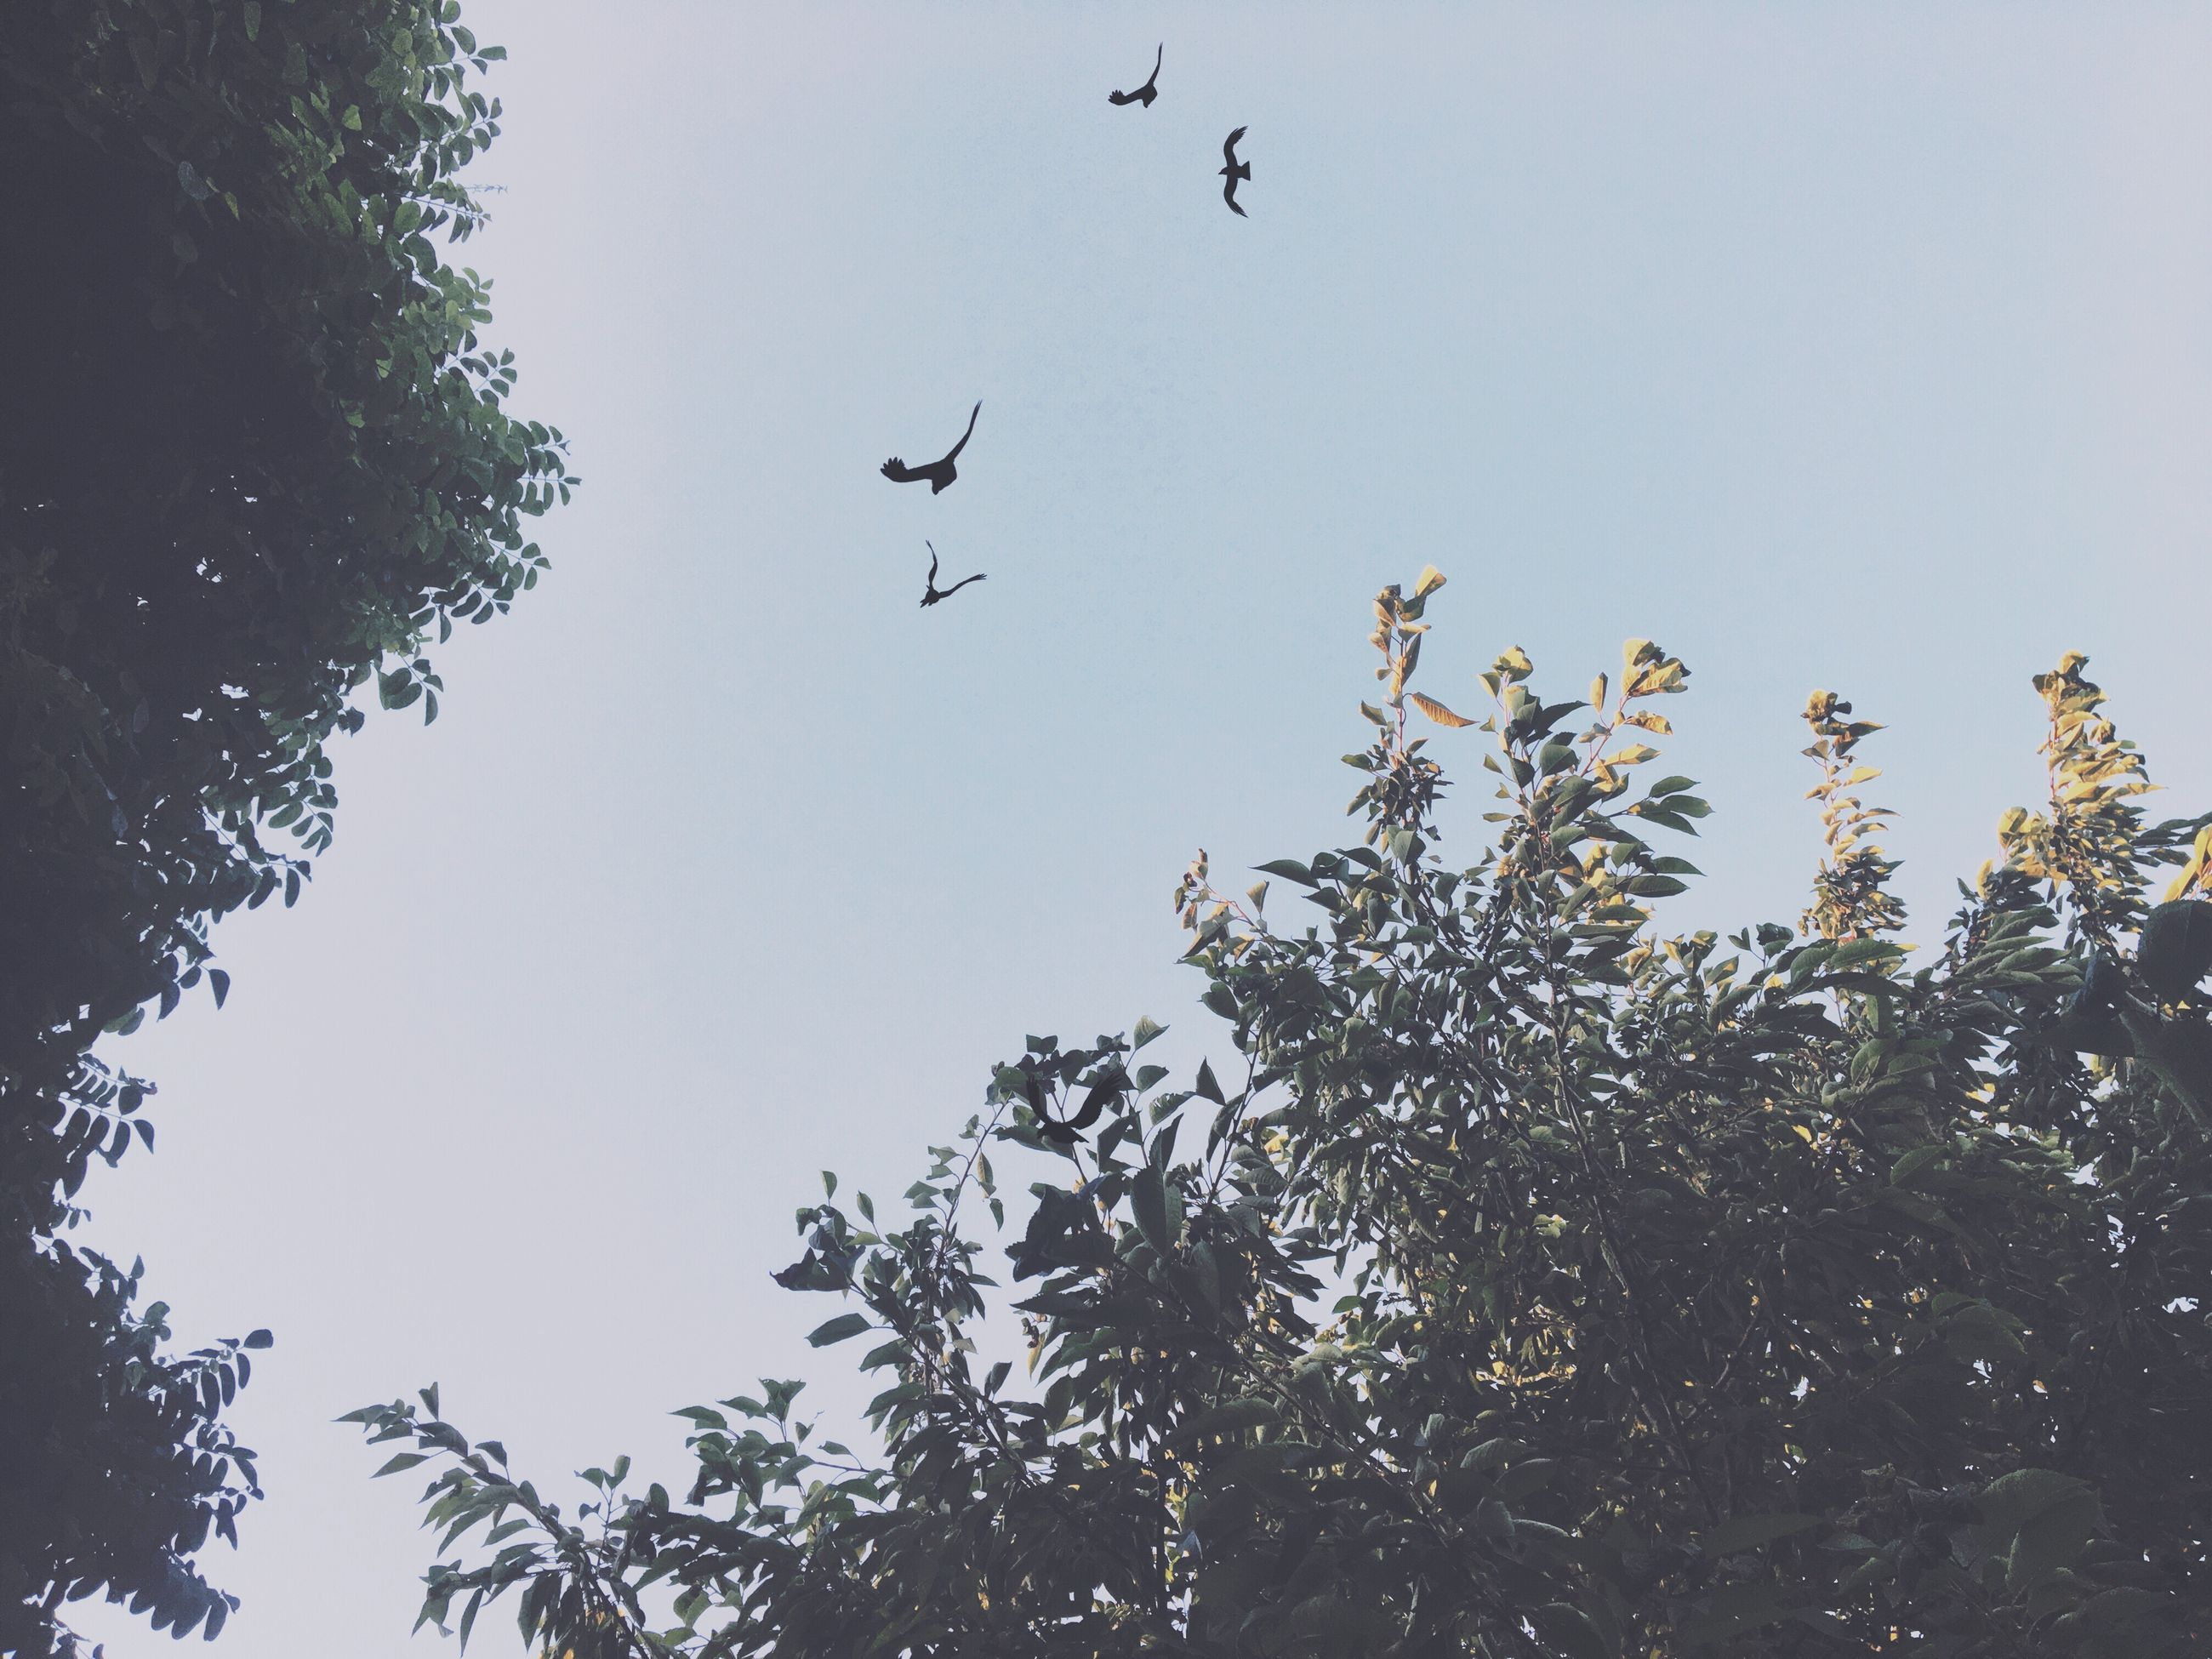 bird, flying, animal themes, animals in the wild, wildlife, low angle view, clear sky, tree, mid-air, spread wings, one animal, flock of birds, copy space, nature, sky, day, branch, outdoors, silhouette